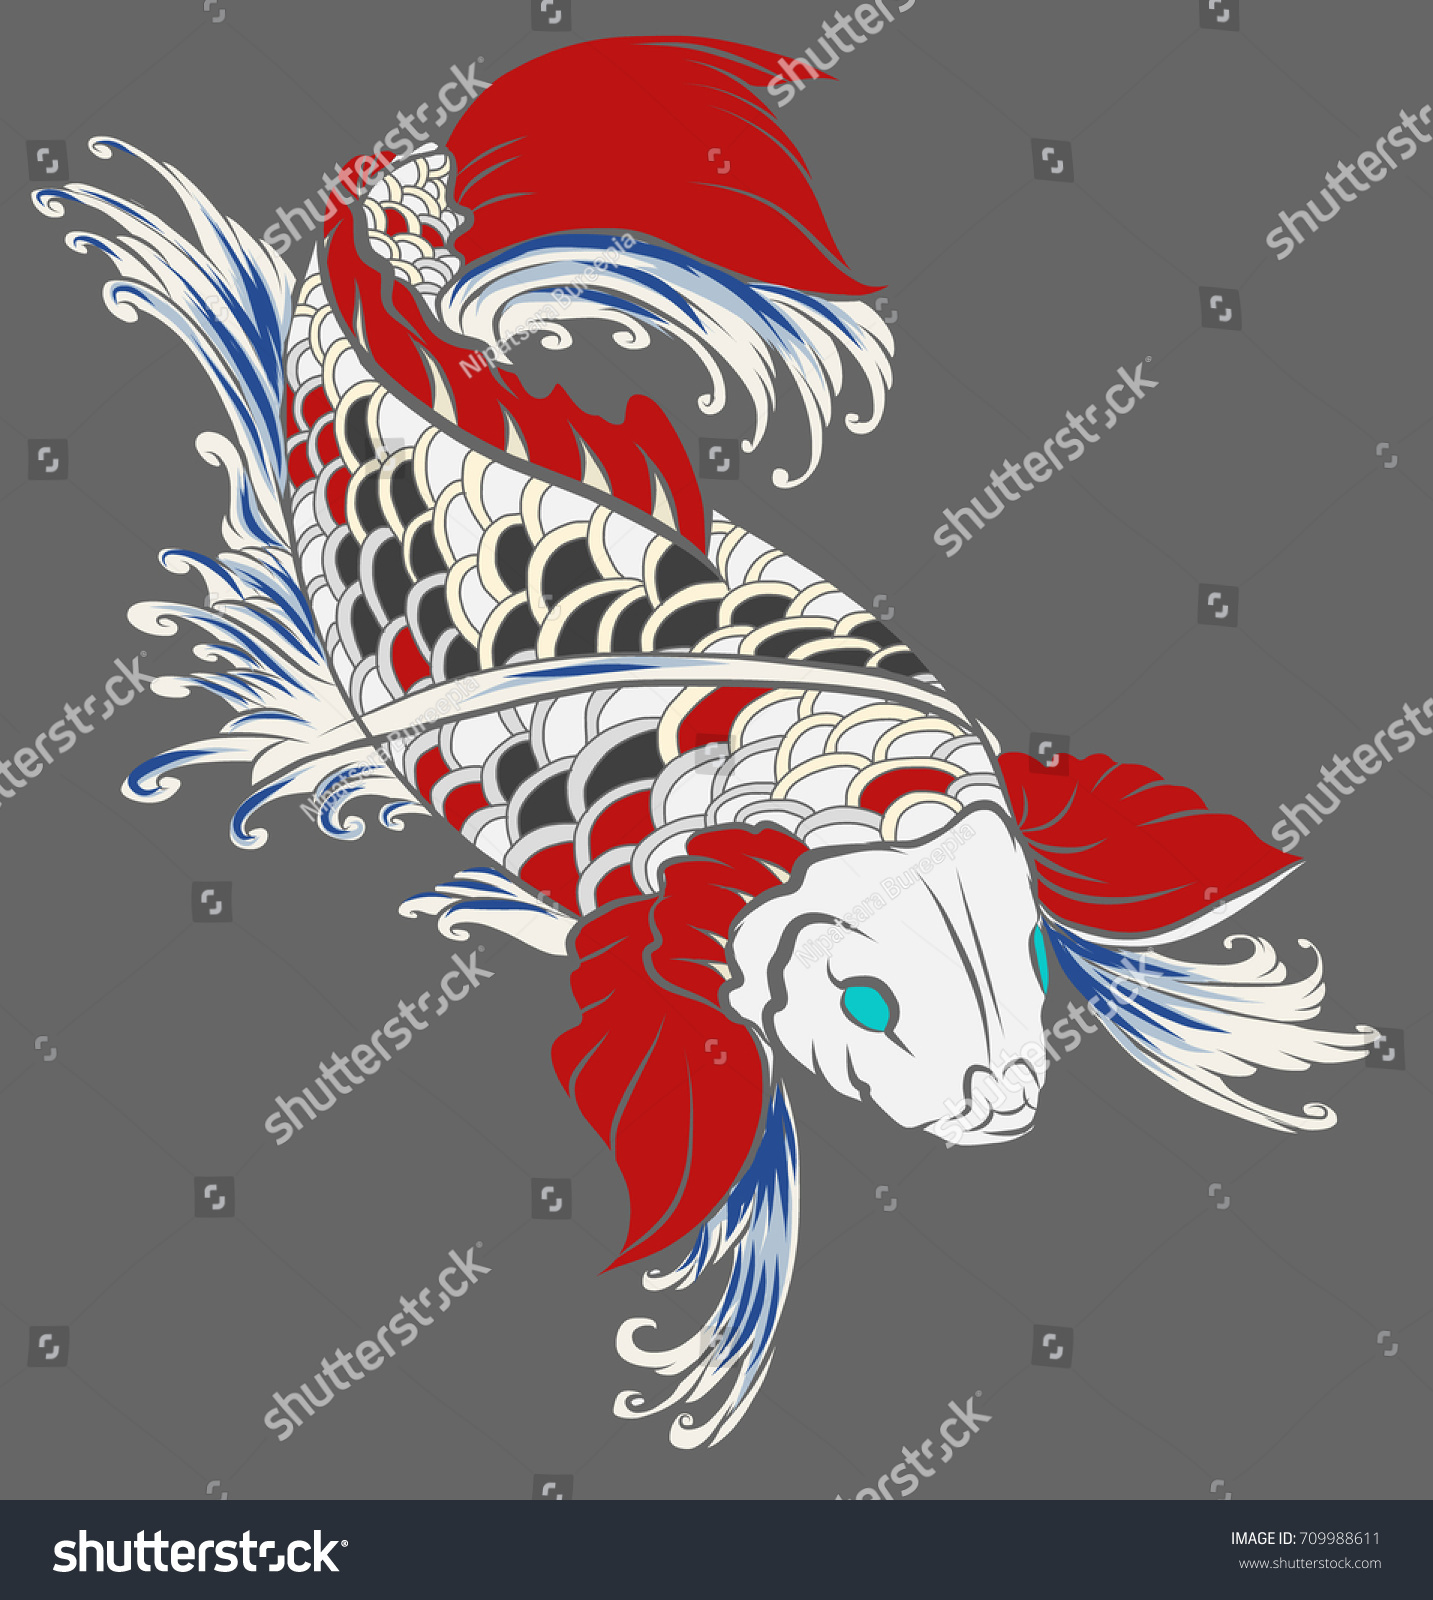 Outstanding Colorful Koi Fish Tattoo Designs Collection - Drawing ...